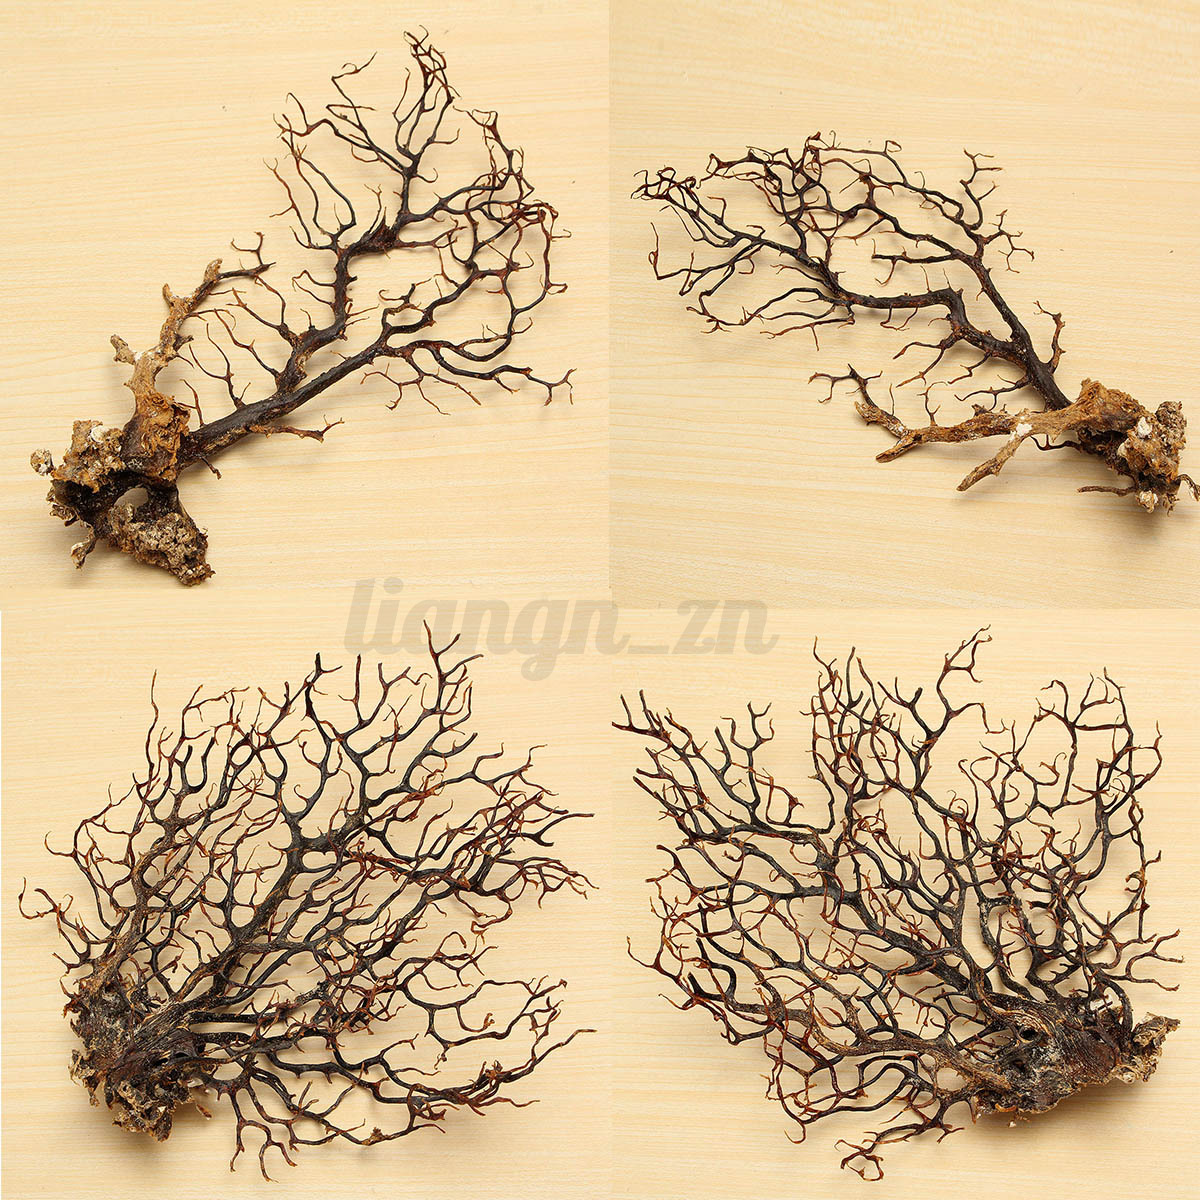 Arbre Artificielle Plantons Aquatique pr Fish Tank Aquarium Ornement Décoration 5